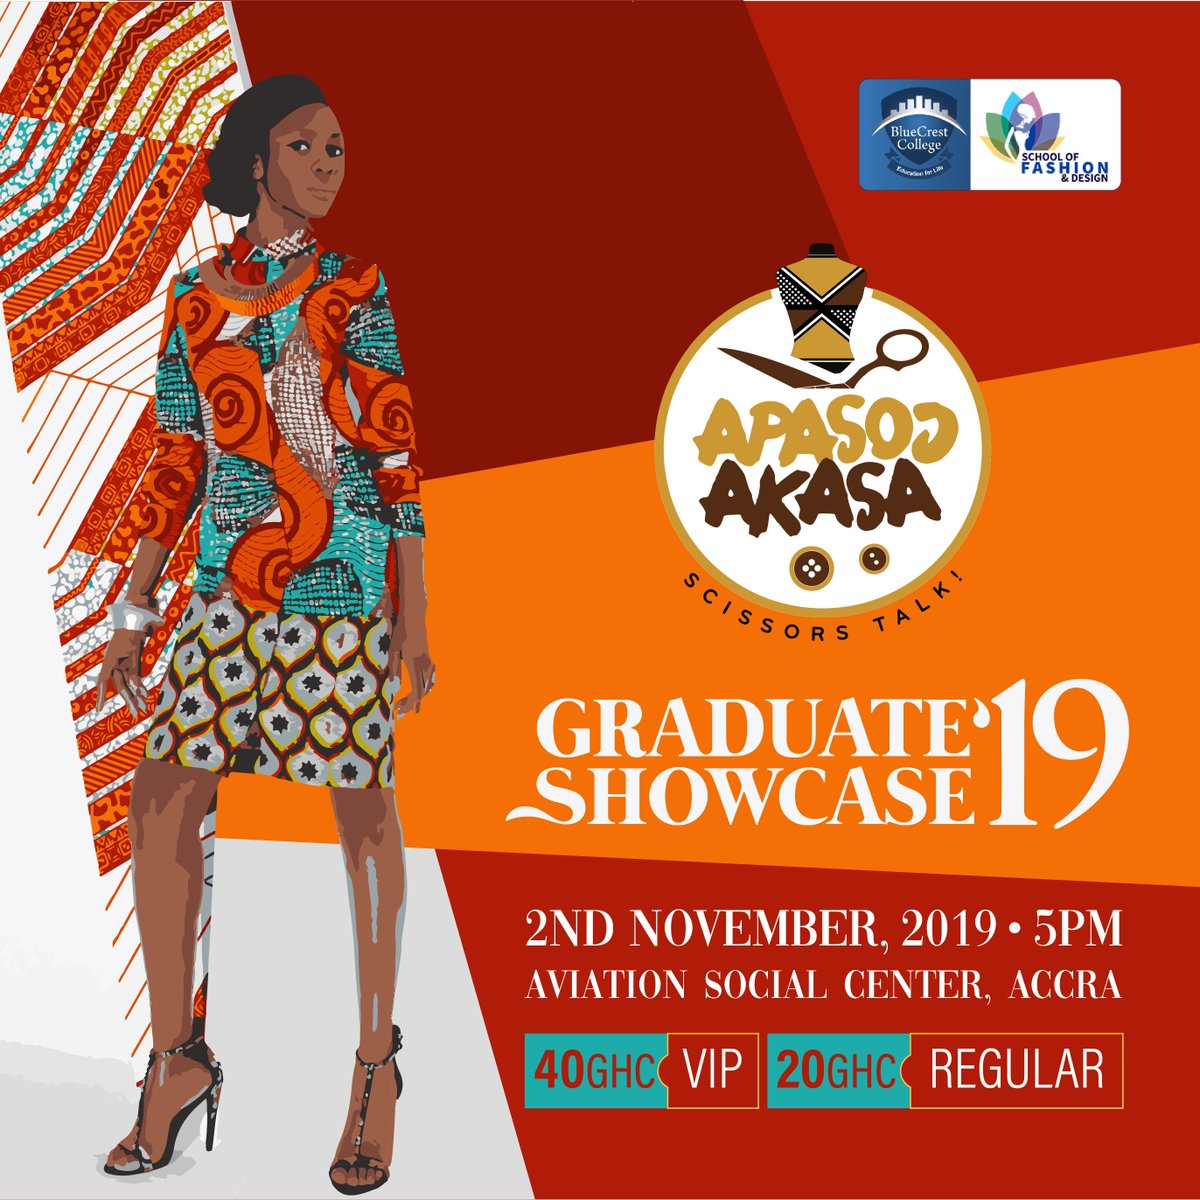 Bluecrest Ghana On Twitter Its Today You Can Still Grab Your Ticket At The Aviationsocialcenter 5 00pm Sharp A Minute Missed Is An Eye Opening Glamour Missed Apasoɔakasa Twentynineteen 2ndnovember Today Fabrics Styles Gowns